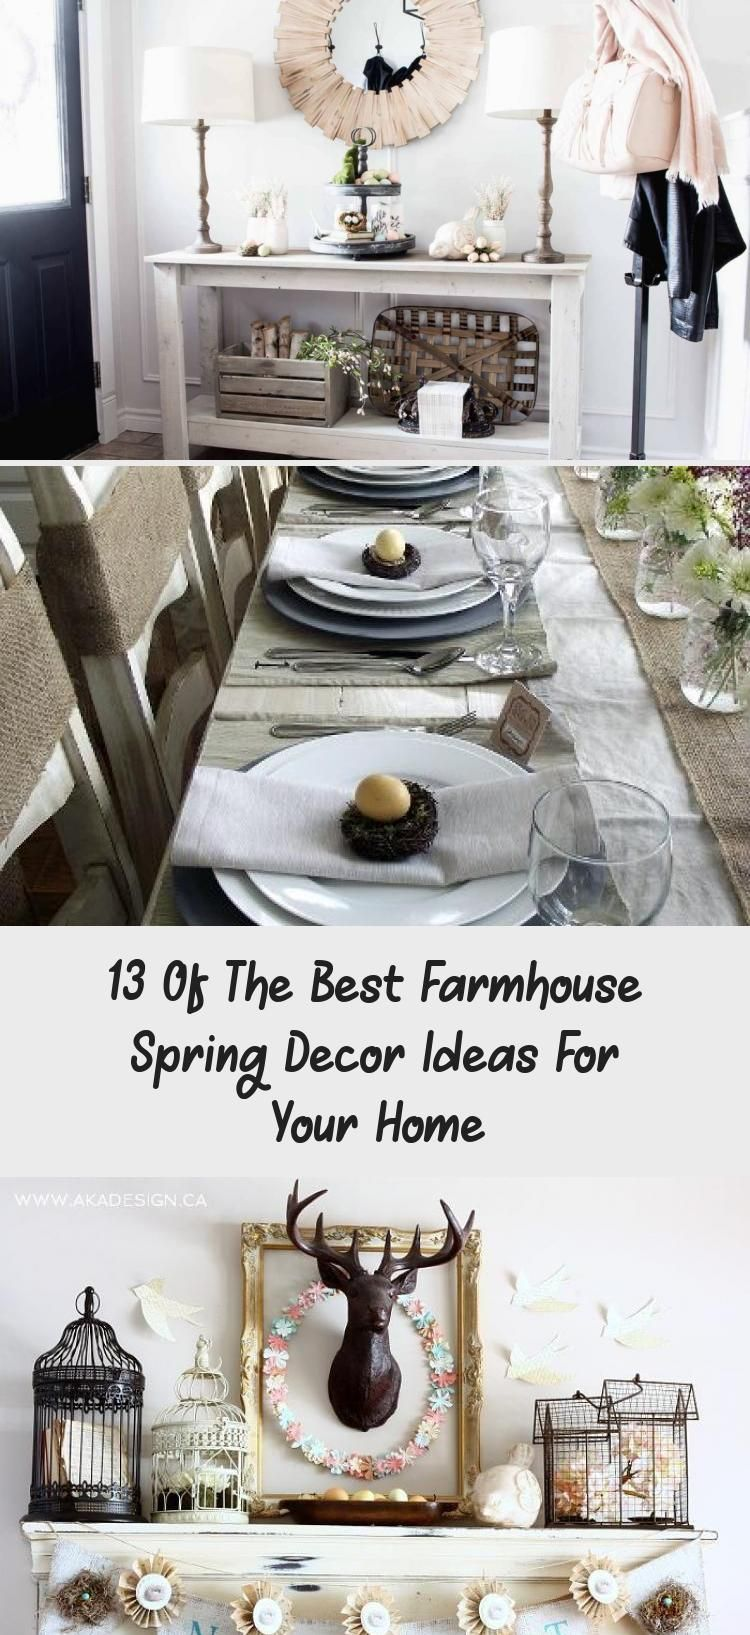 13 Of The Best Farmhouse Spring Decor Ideas For Your Home 13 of the Best Farmhouse Spring Decor Ideas for Your Home